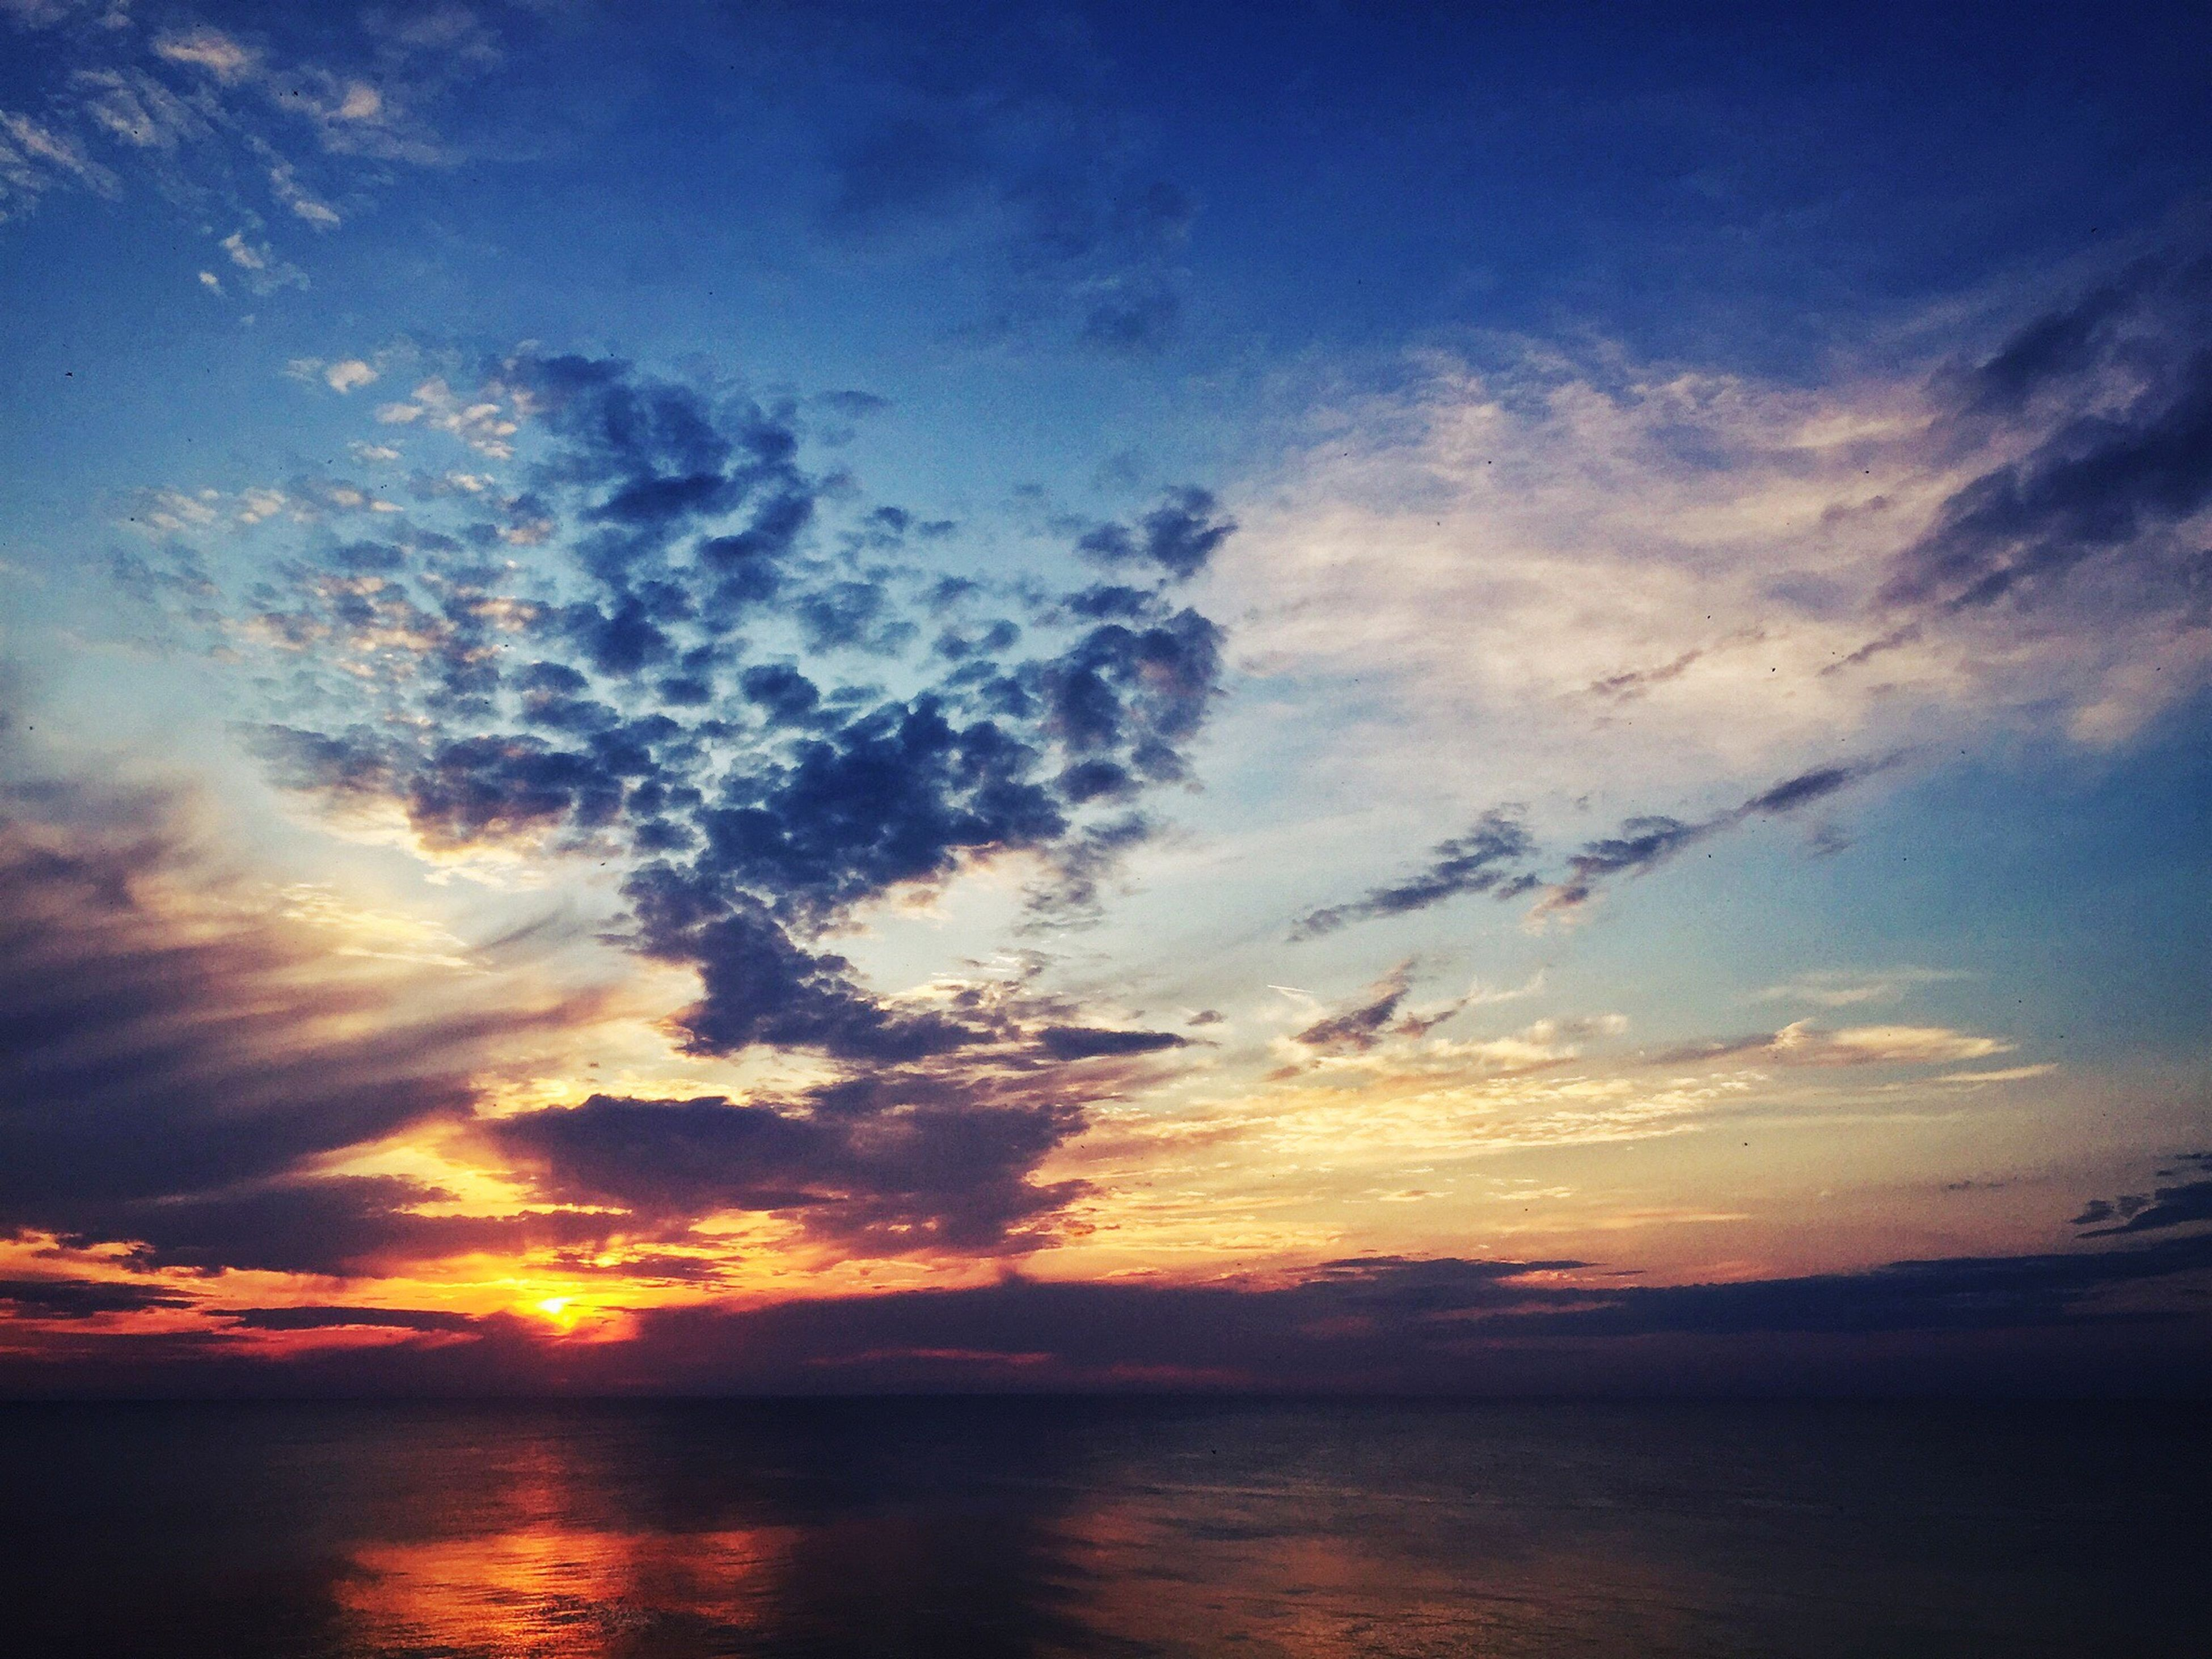 Sunset Scenics Beauty In Nature Sky Nature Tranquil Scene Sea Water Idyllic Tranquility Reflection Silhouette No People Horizon Over Water Outdoors clouds